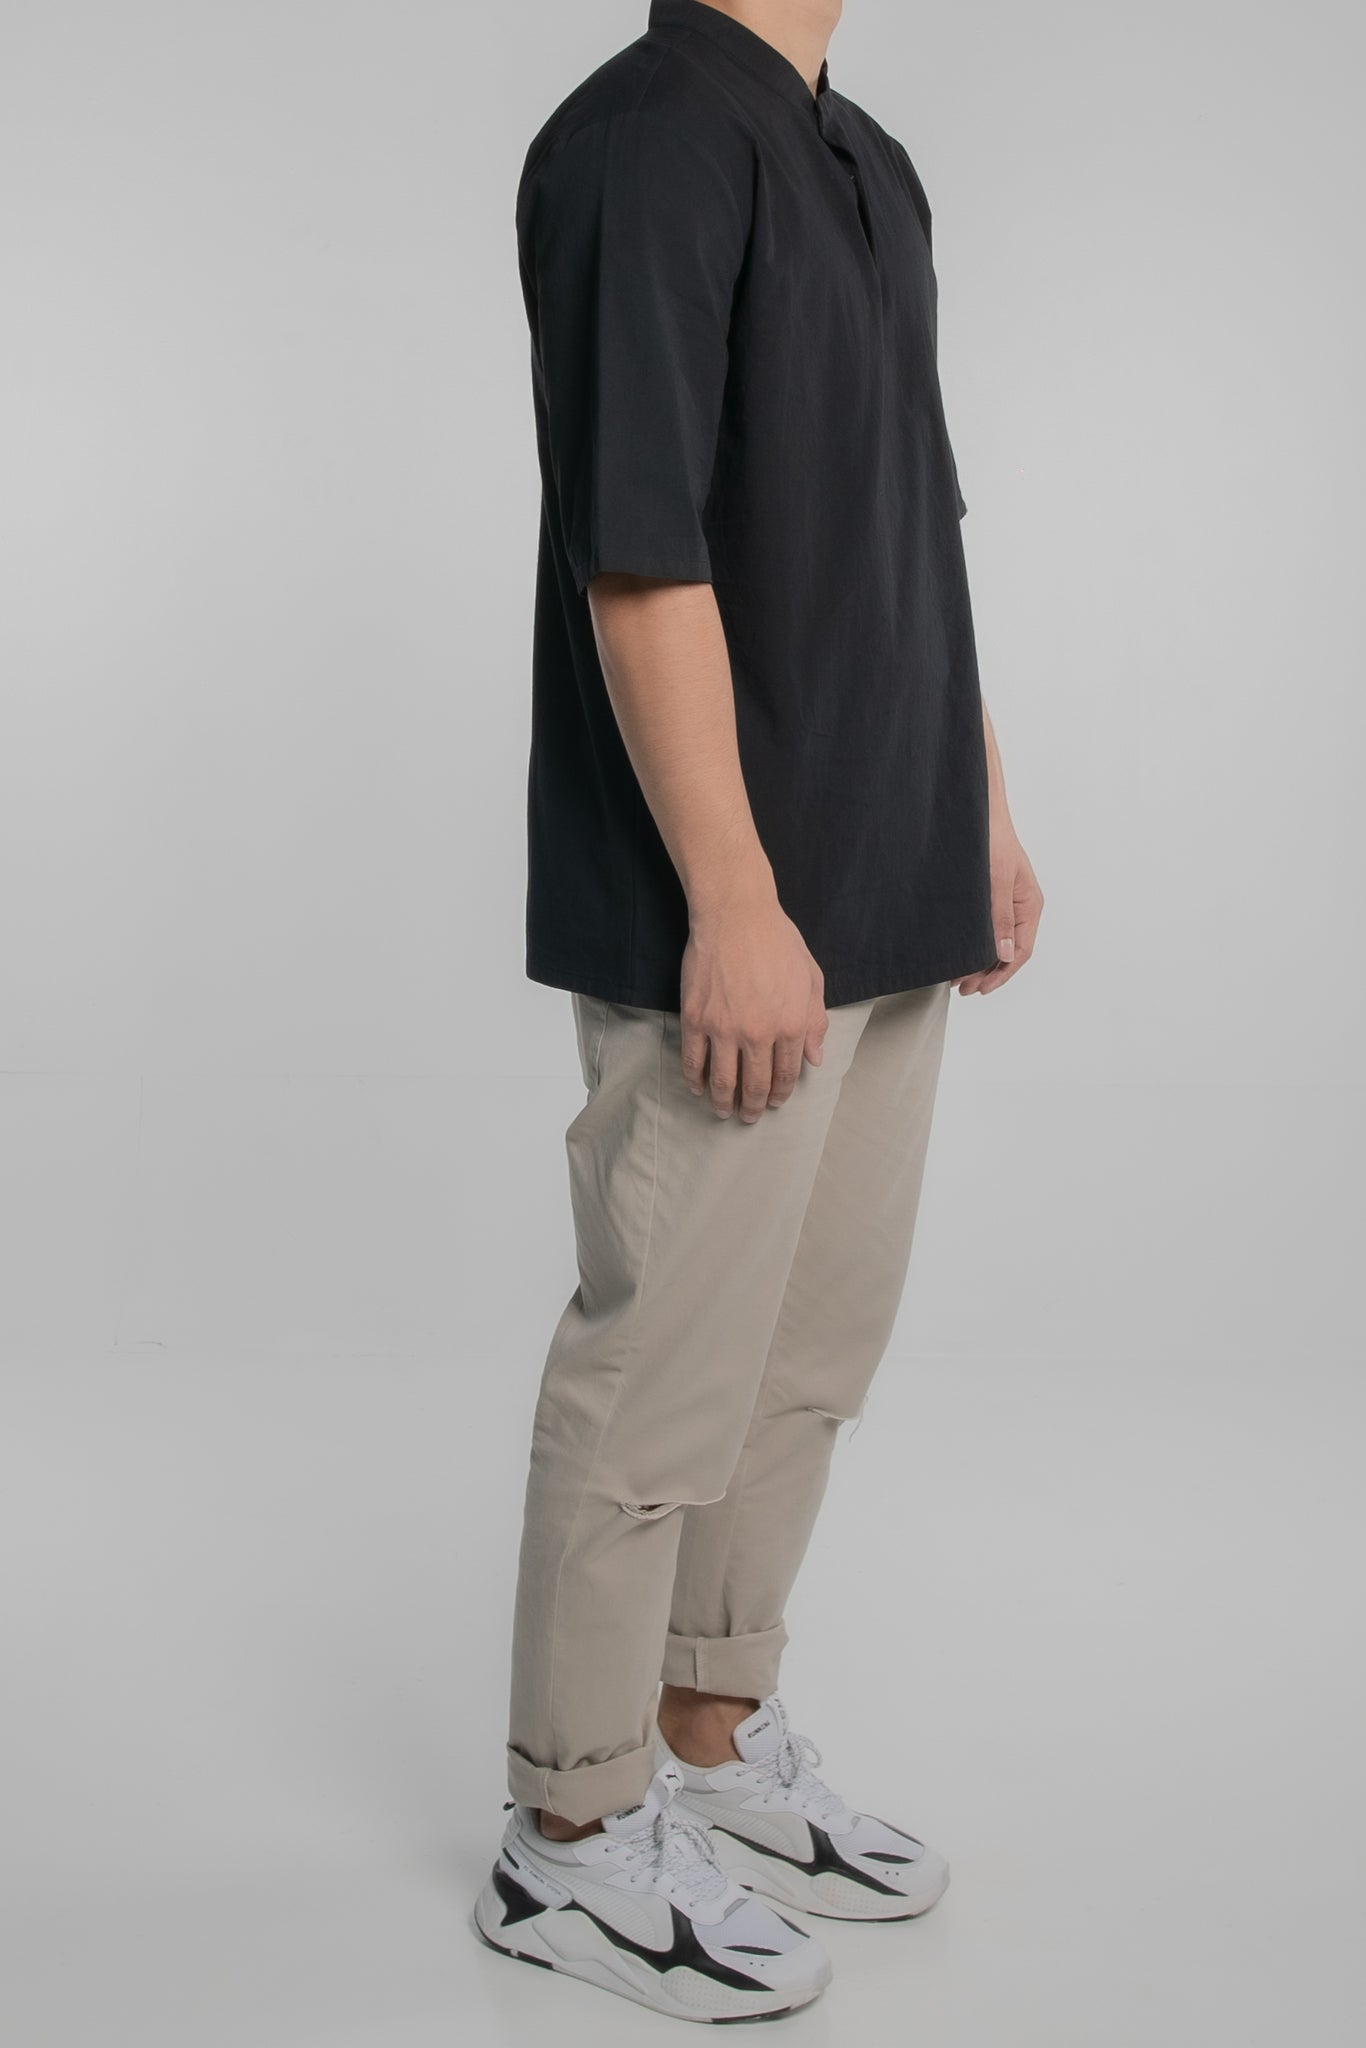 Mandarin Collar Short Sleeve Shirt (Black)